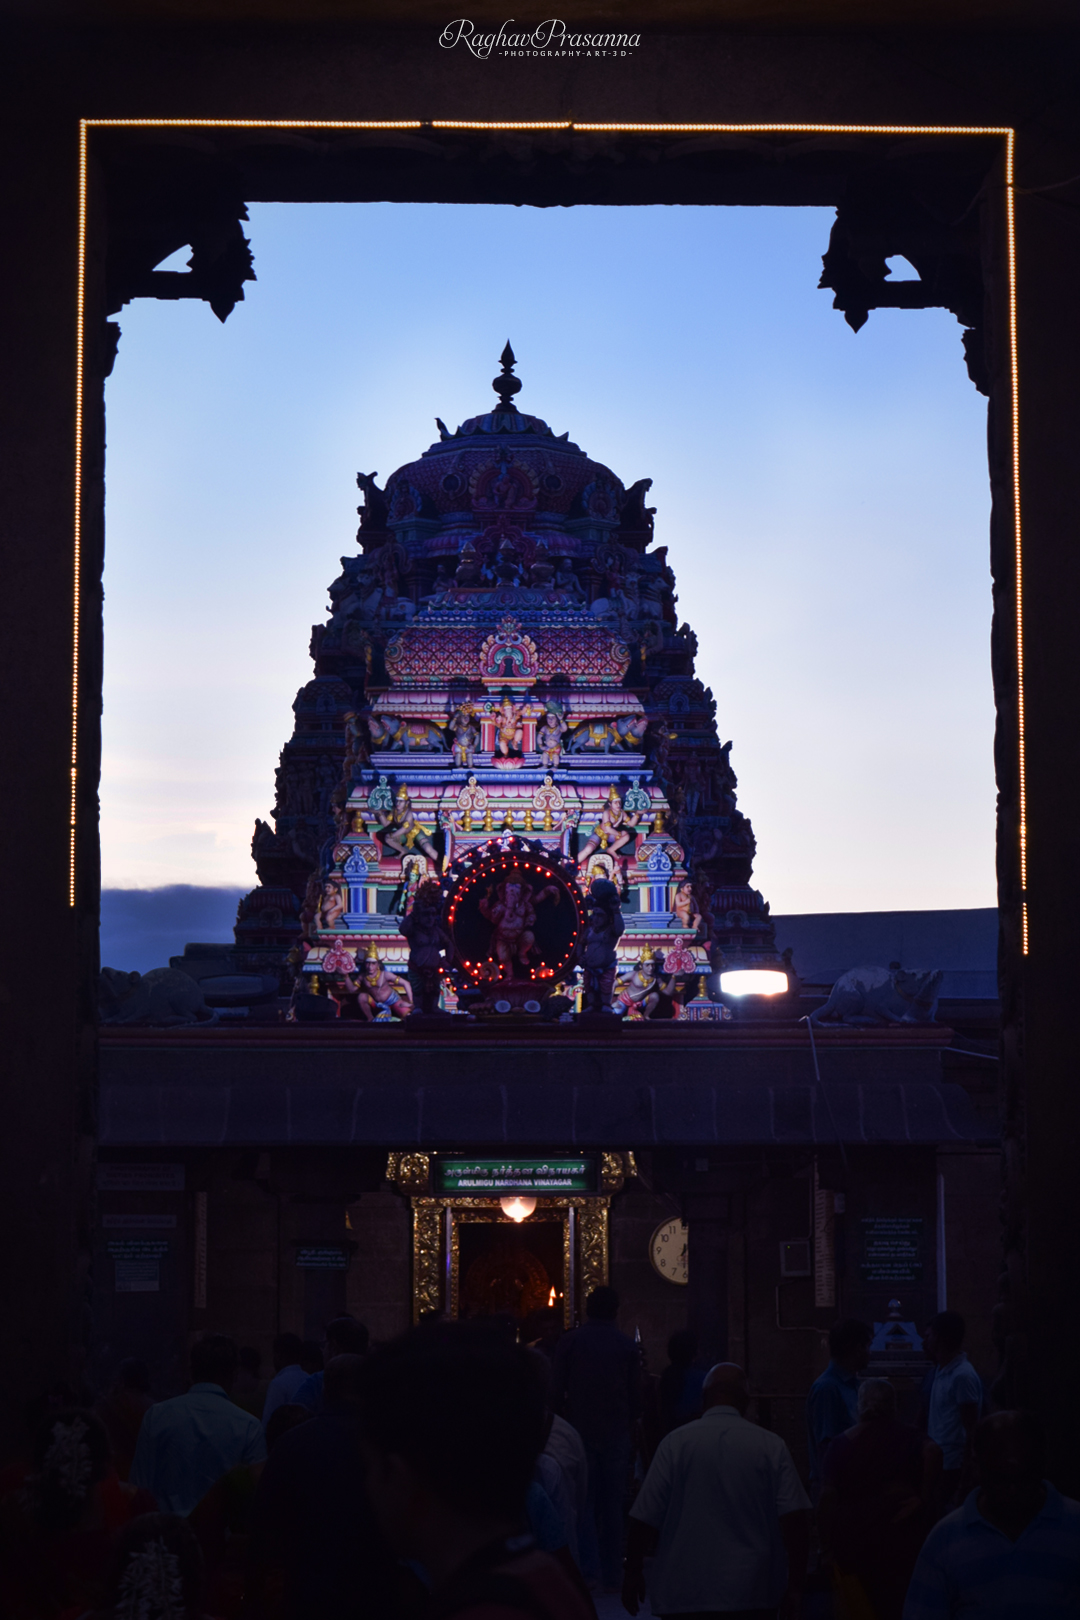 Navarathri - Festival of lights at Mylapore